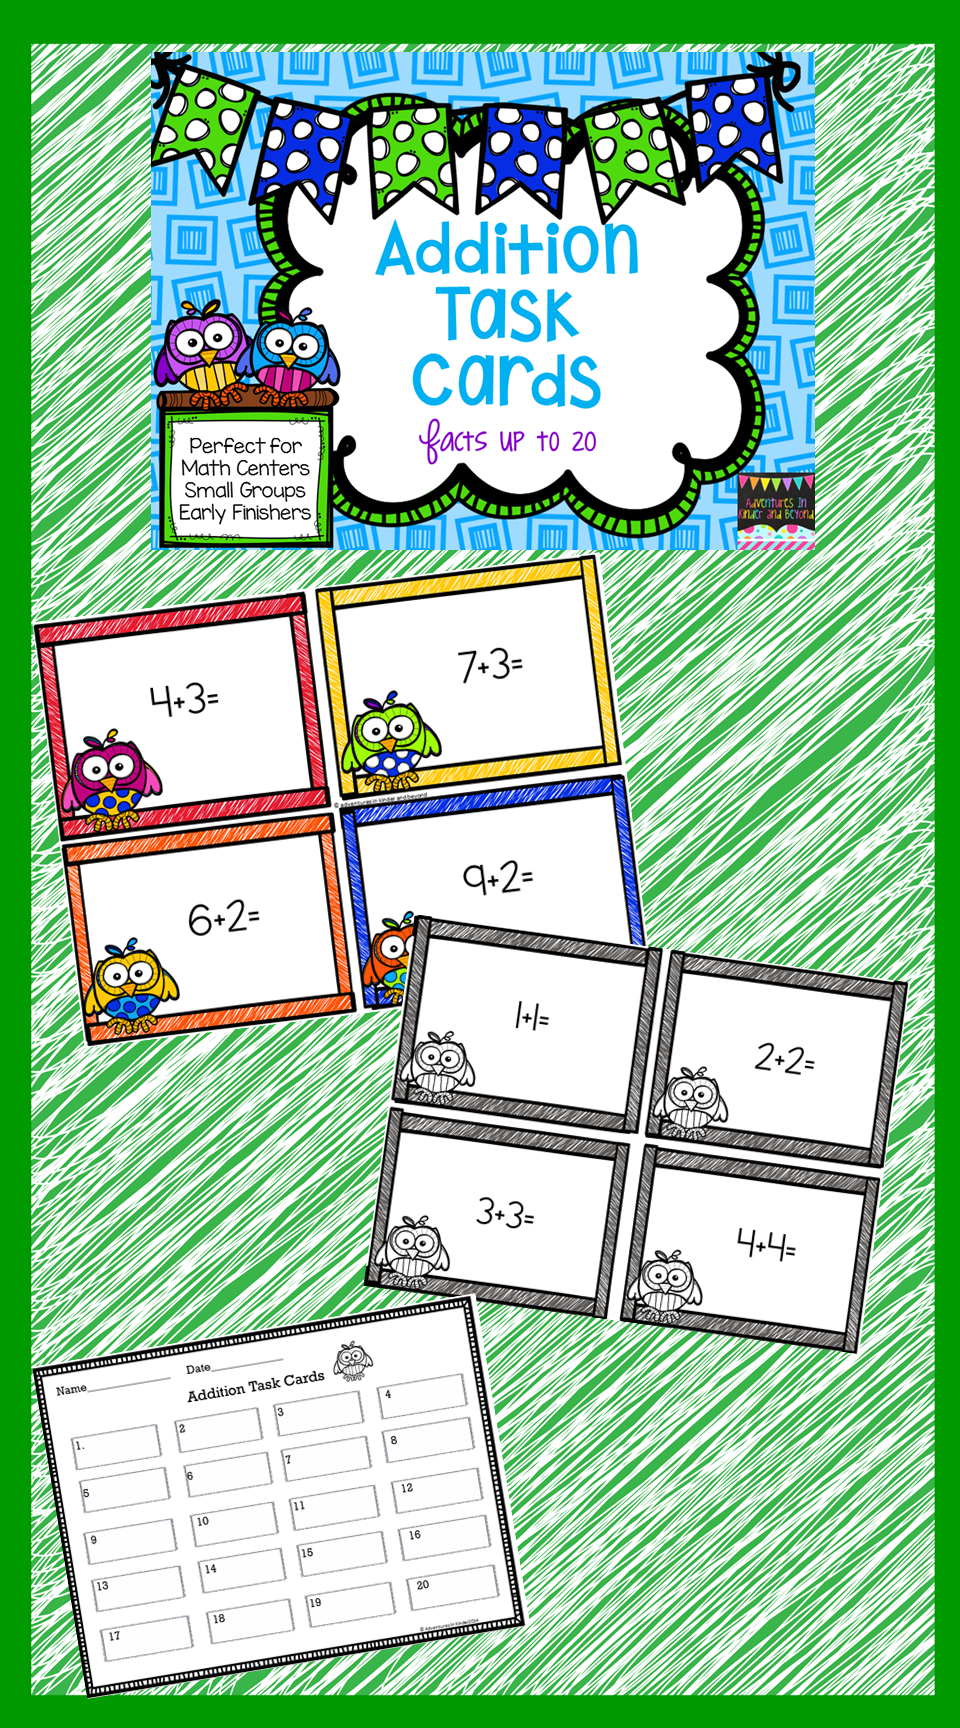 Addition Task Cards   Pinterest   Early finishers, Math facts and Math